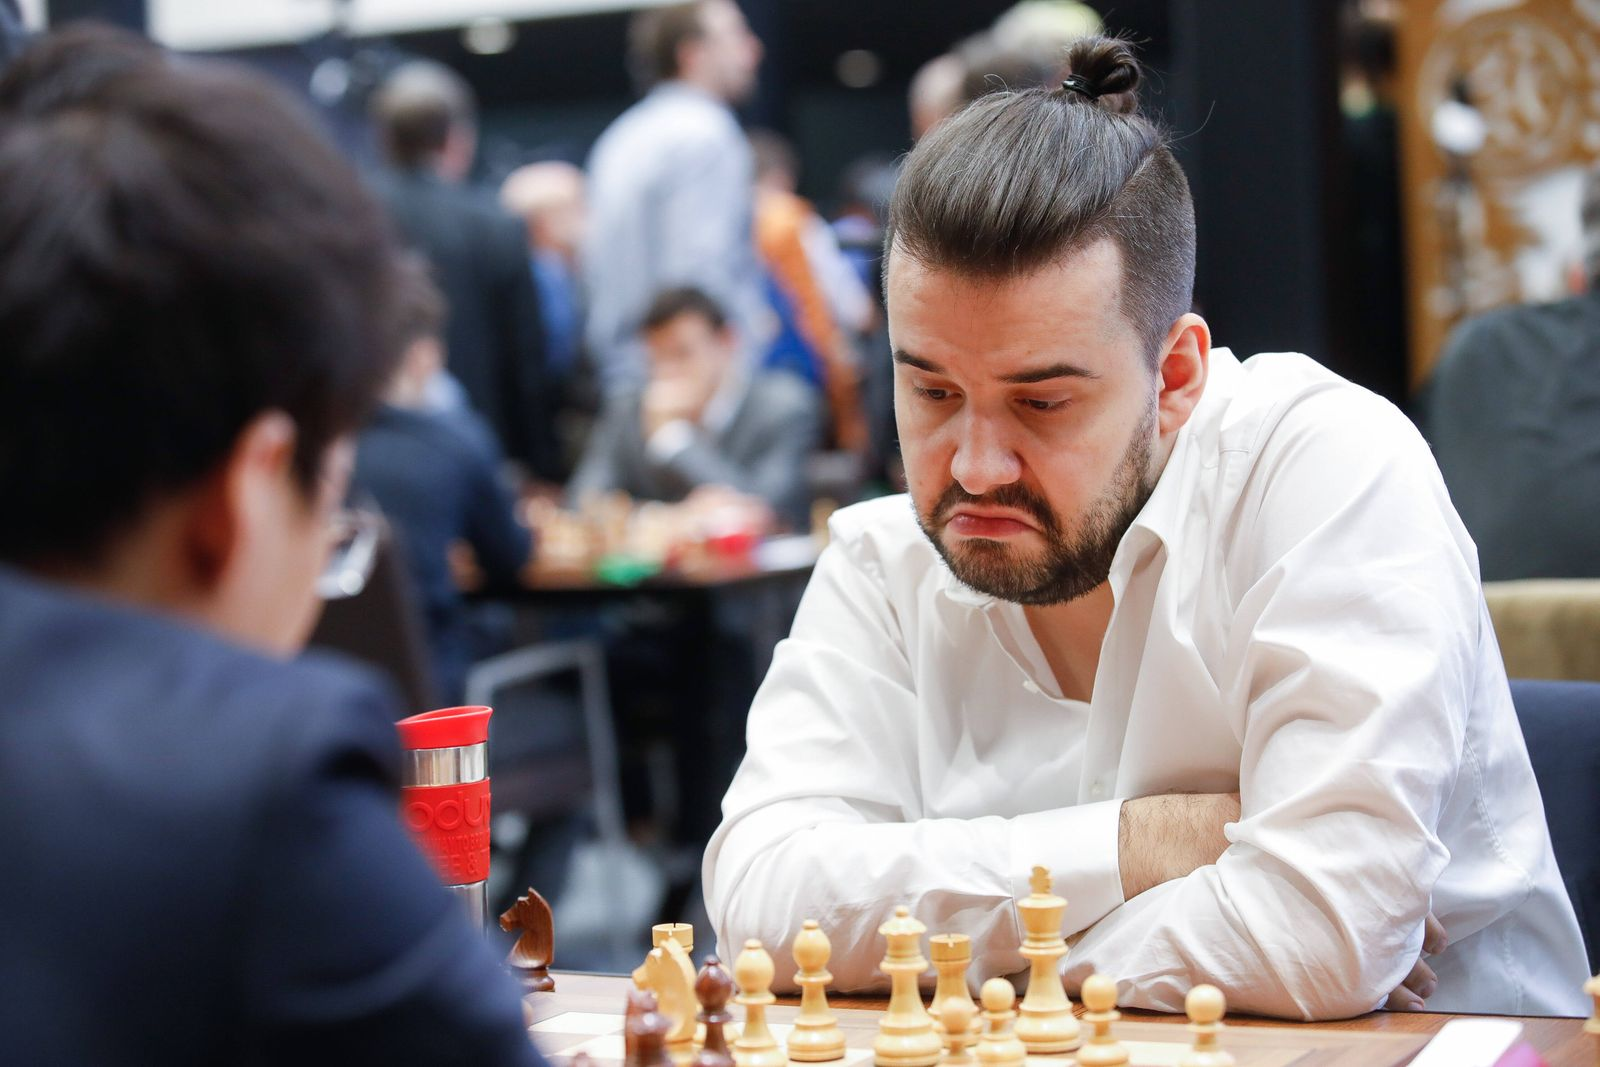 (191229) -- MOSCOW, Dec. 29, 2019 (Xinhua) -- Ian Nepomniachtchi (R) of Russia competes with Yu Yangyi of China in the